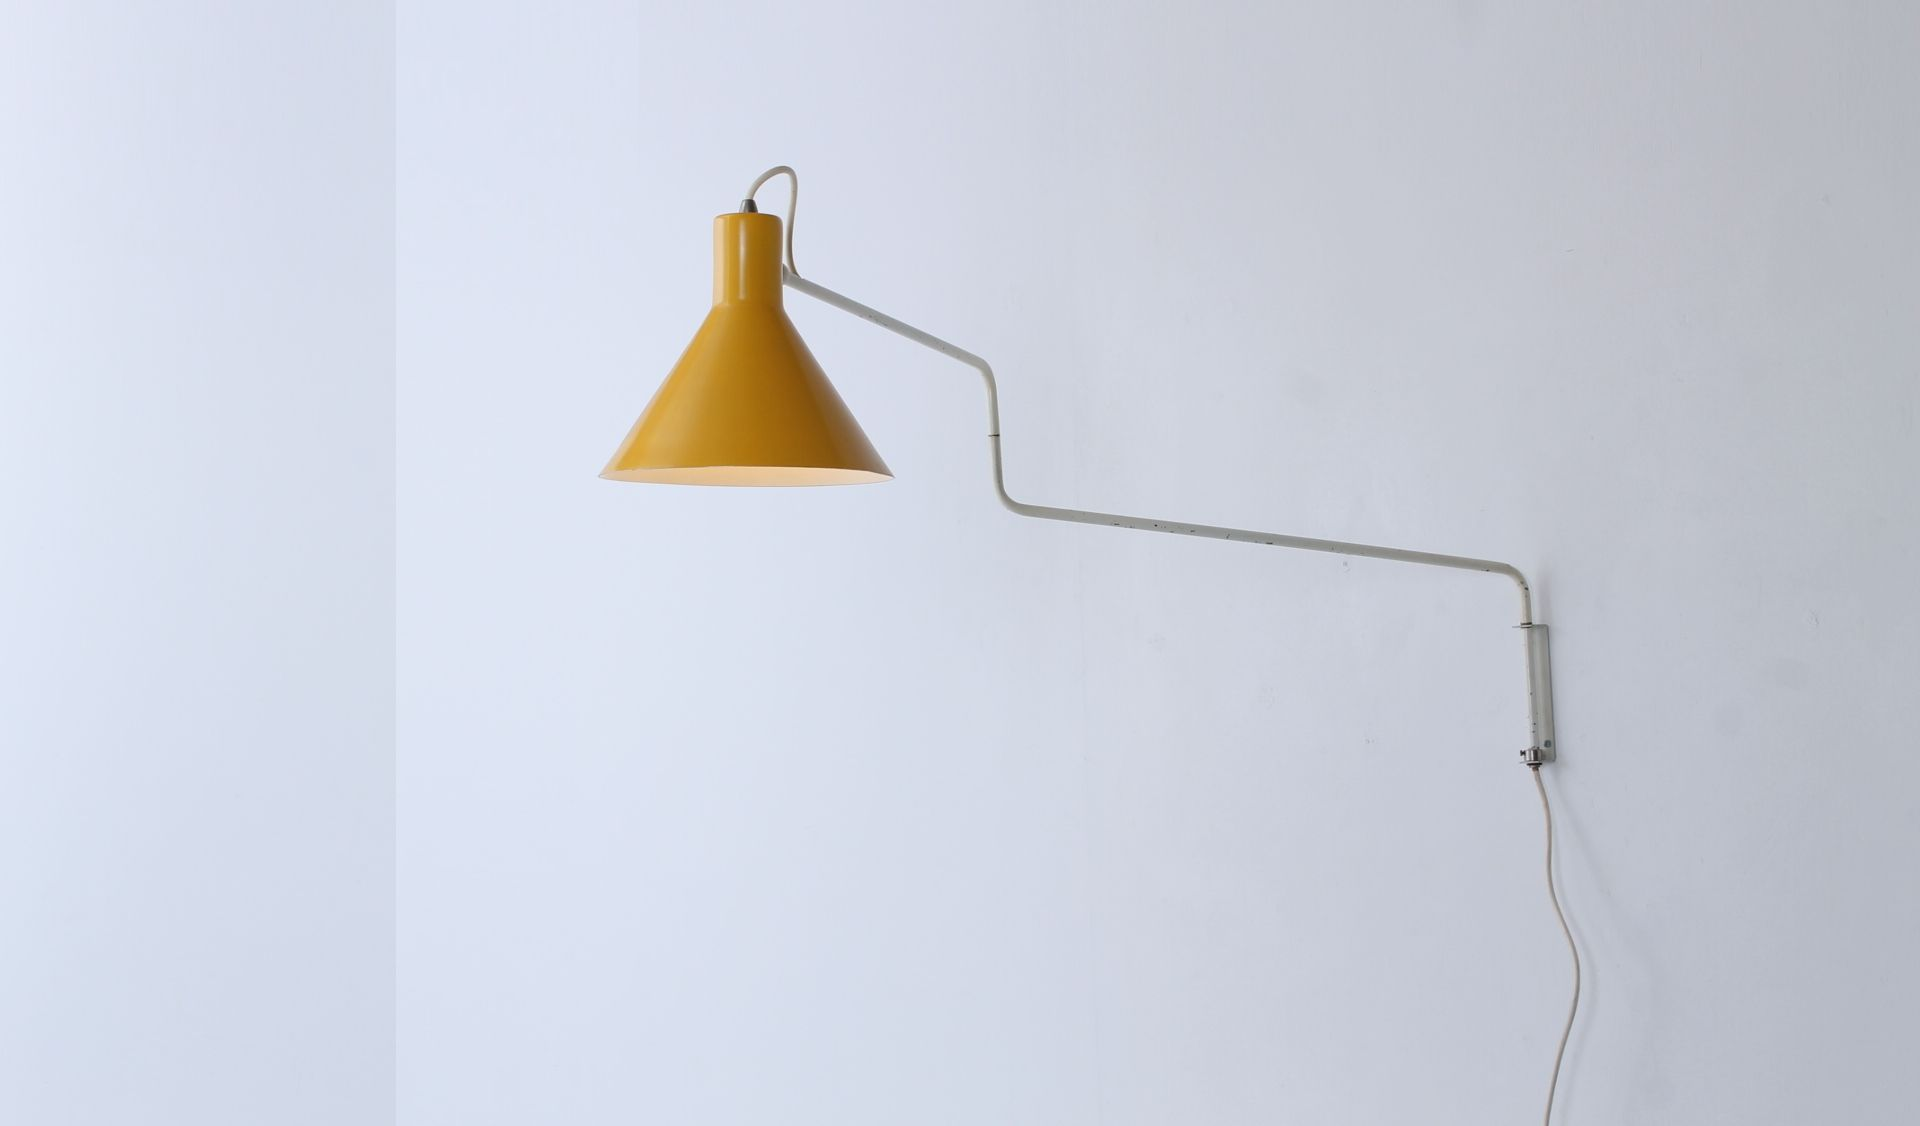 748-08 Swing Arm Lamp in Yellow and White by J. J. M. Hoogervorst ...